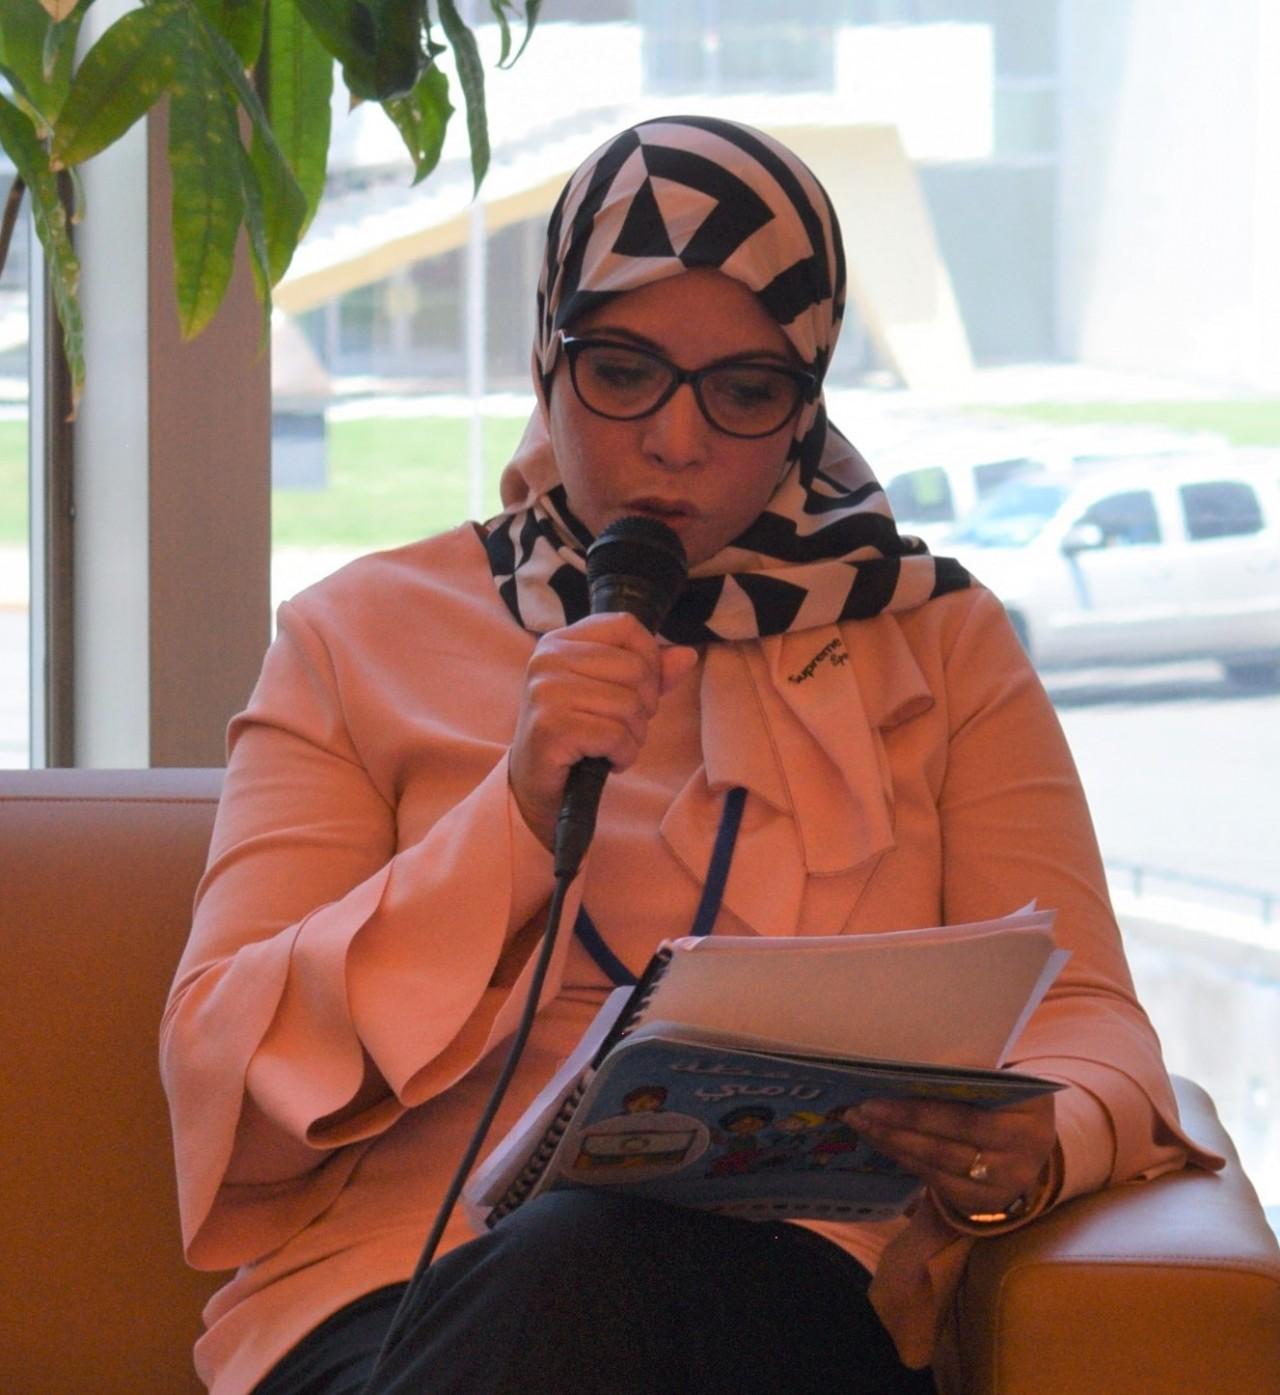 Zoubeida Bouallagui, Head of Unit for Technical Monitoring and Dissemination, Public Reading Directorate of the Ministry of Culture, Tunisia